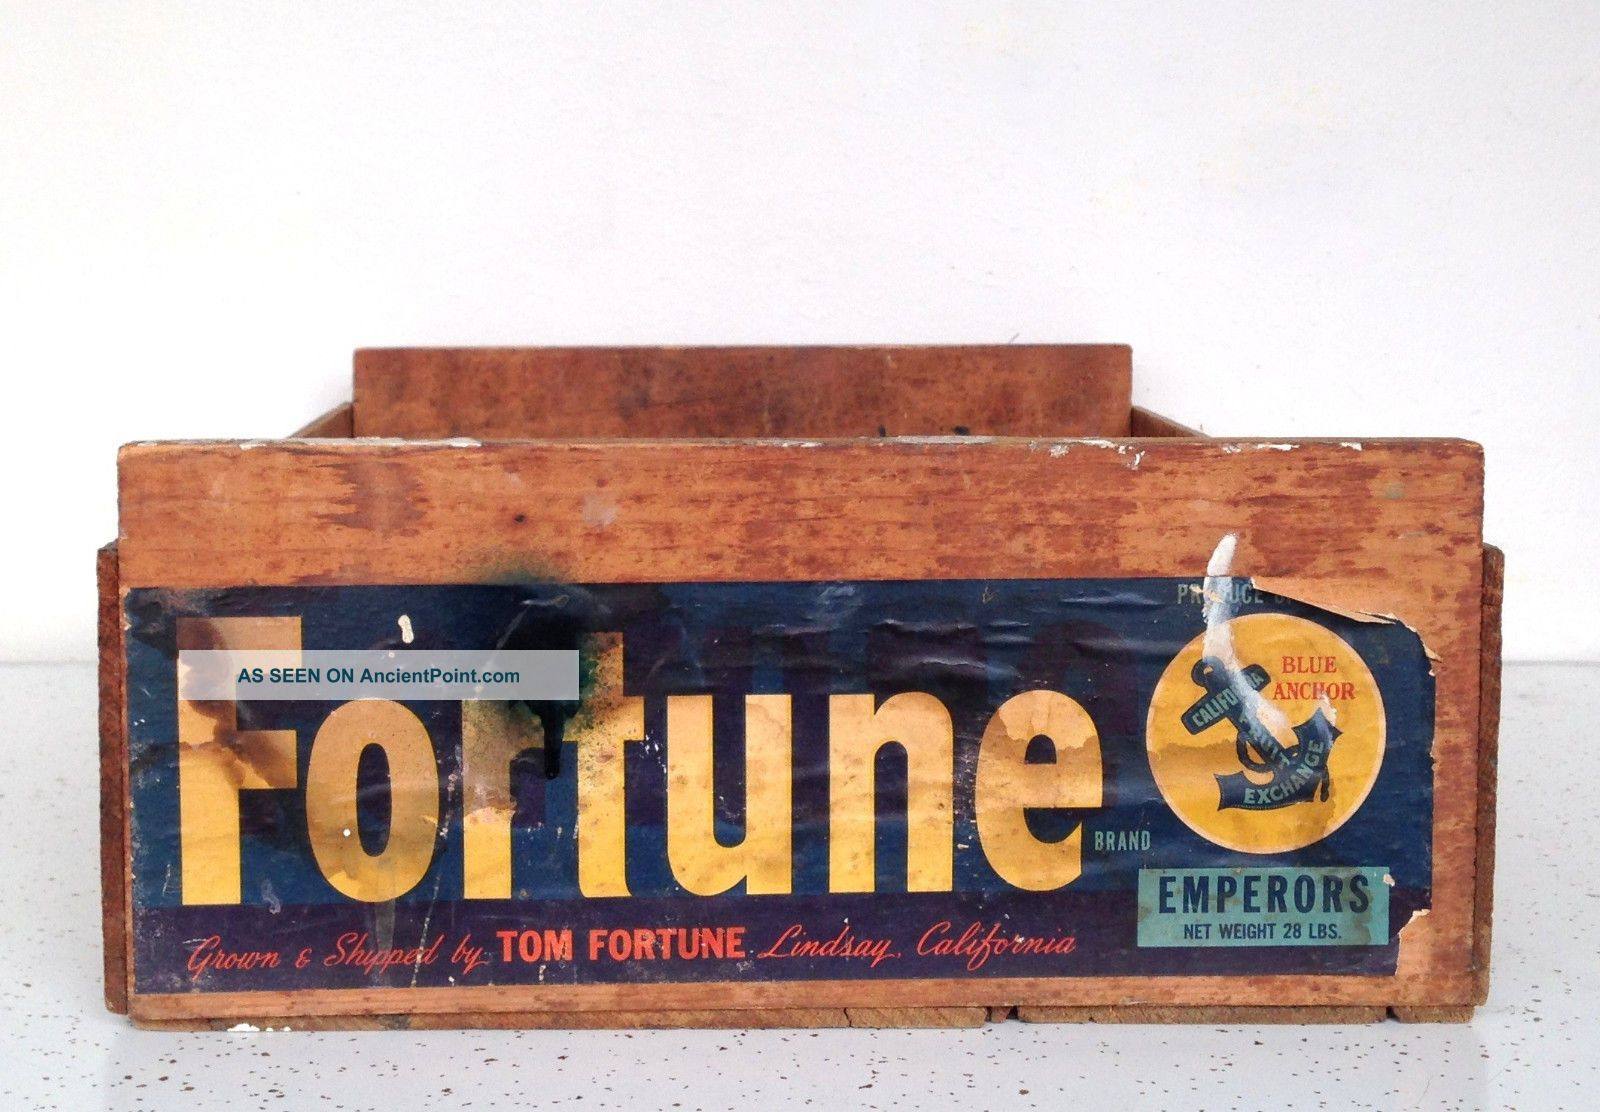 Vintage Wooden Crate Carton Trug Box Cottage Rustic Fruit California Fortune Usa 1900-1950 photo